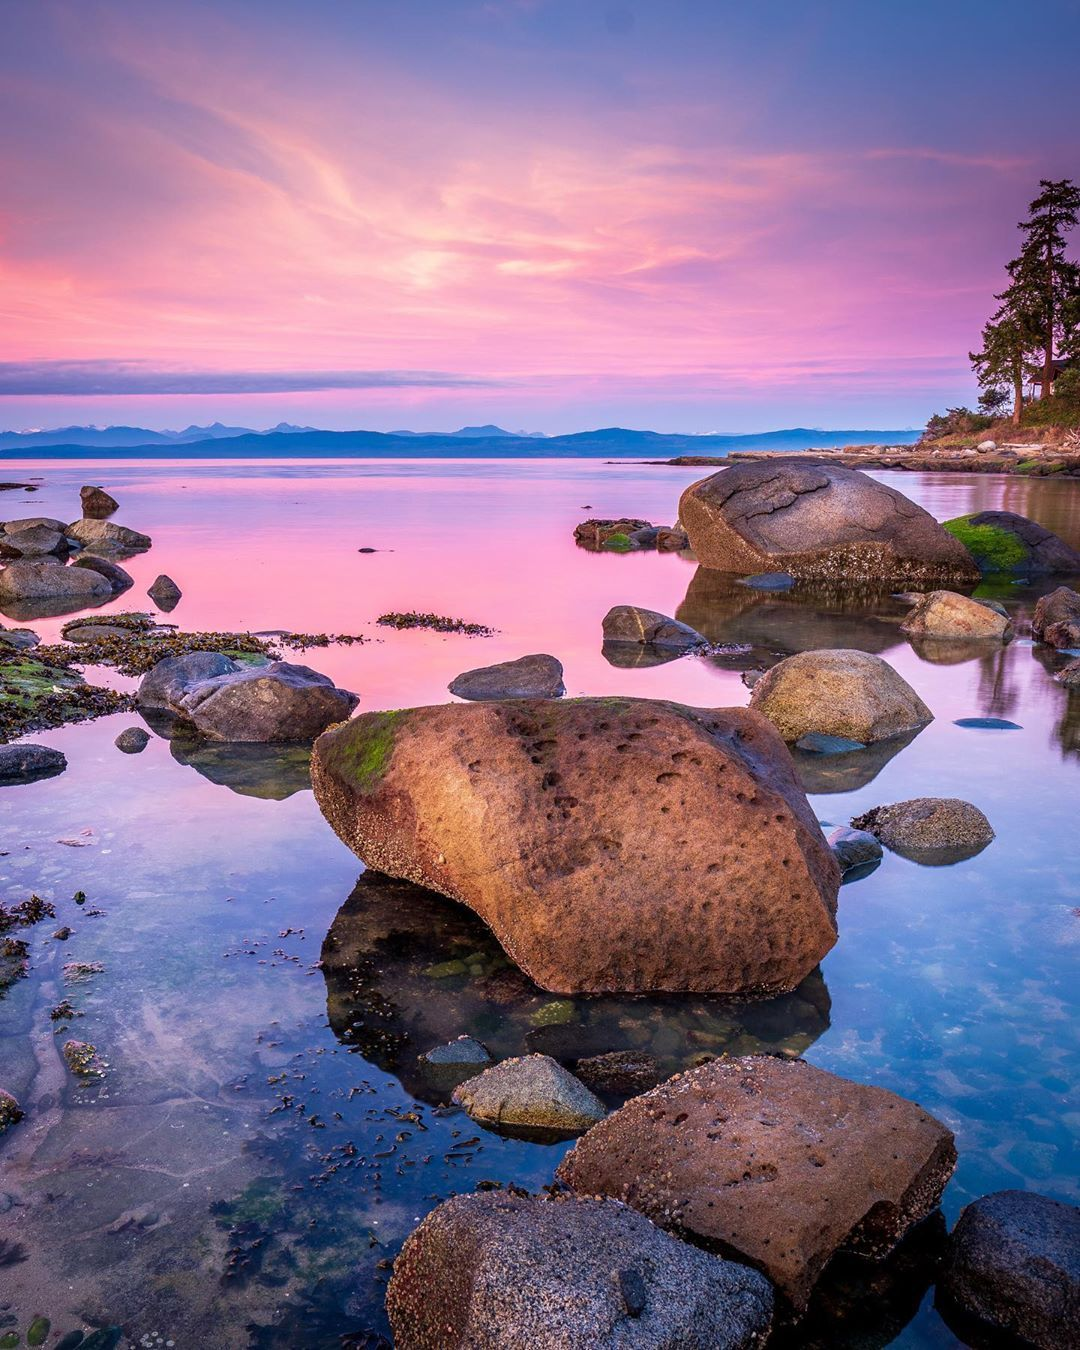 Cory Schadt On Instagram Nature Landscape Sunset Photography Pink Blue With Rocks In Water Hornby Sunset Photography Nature Photography Scenic Photos